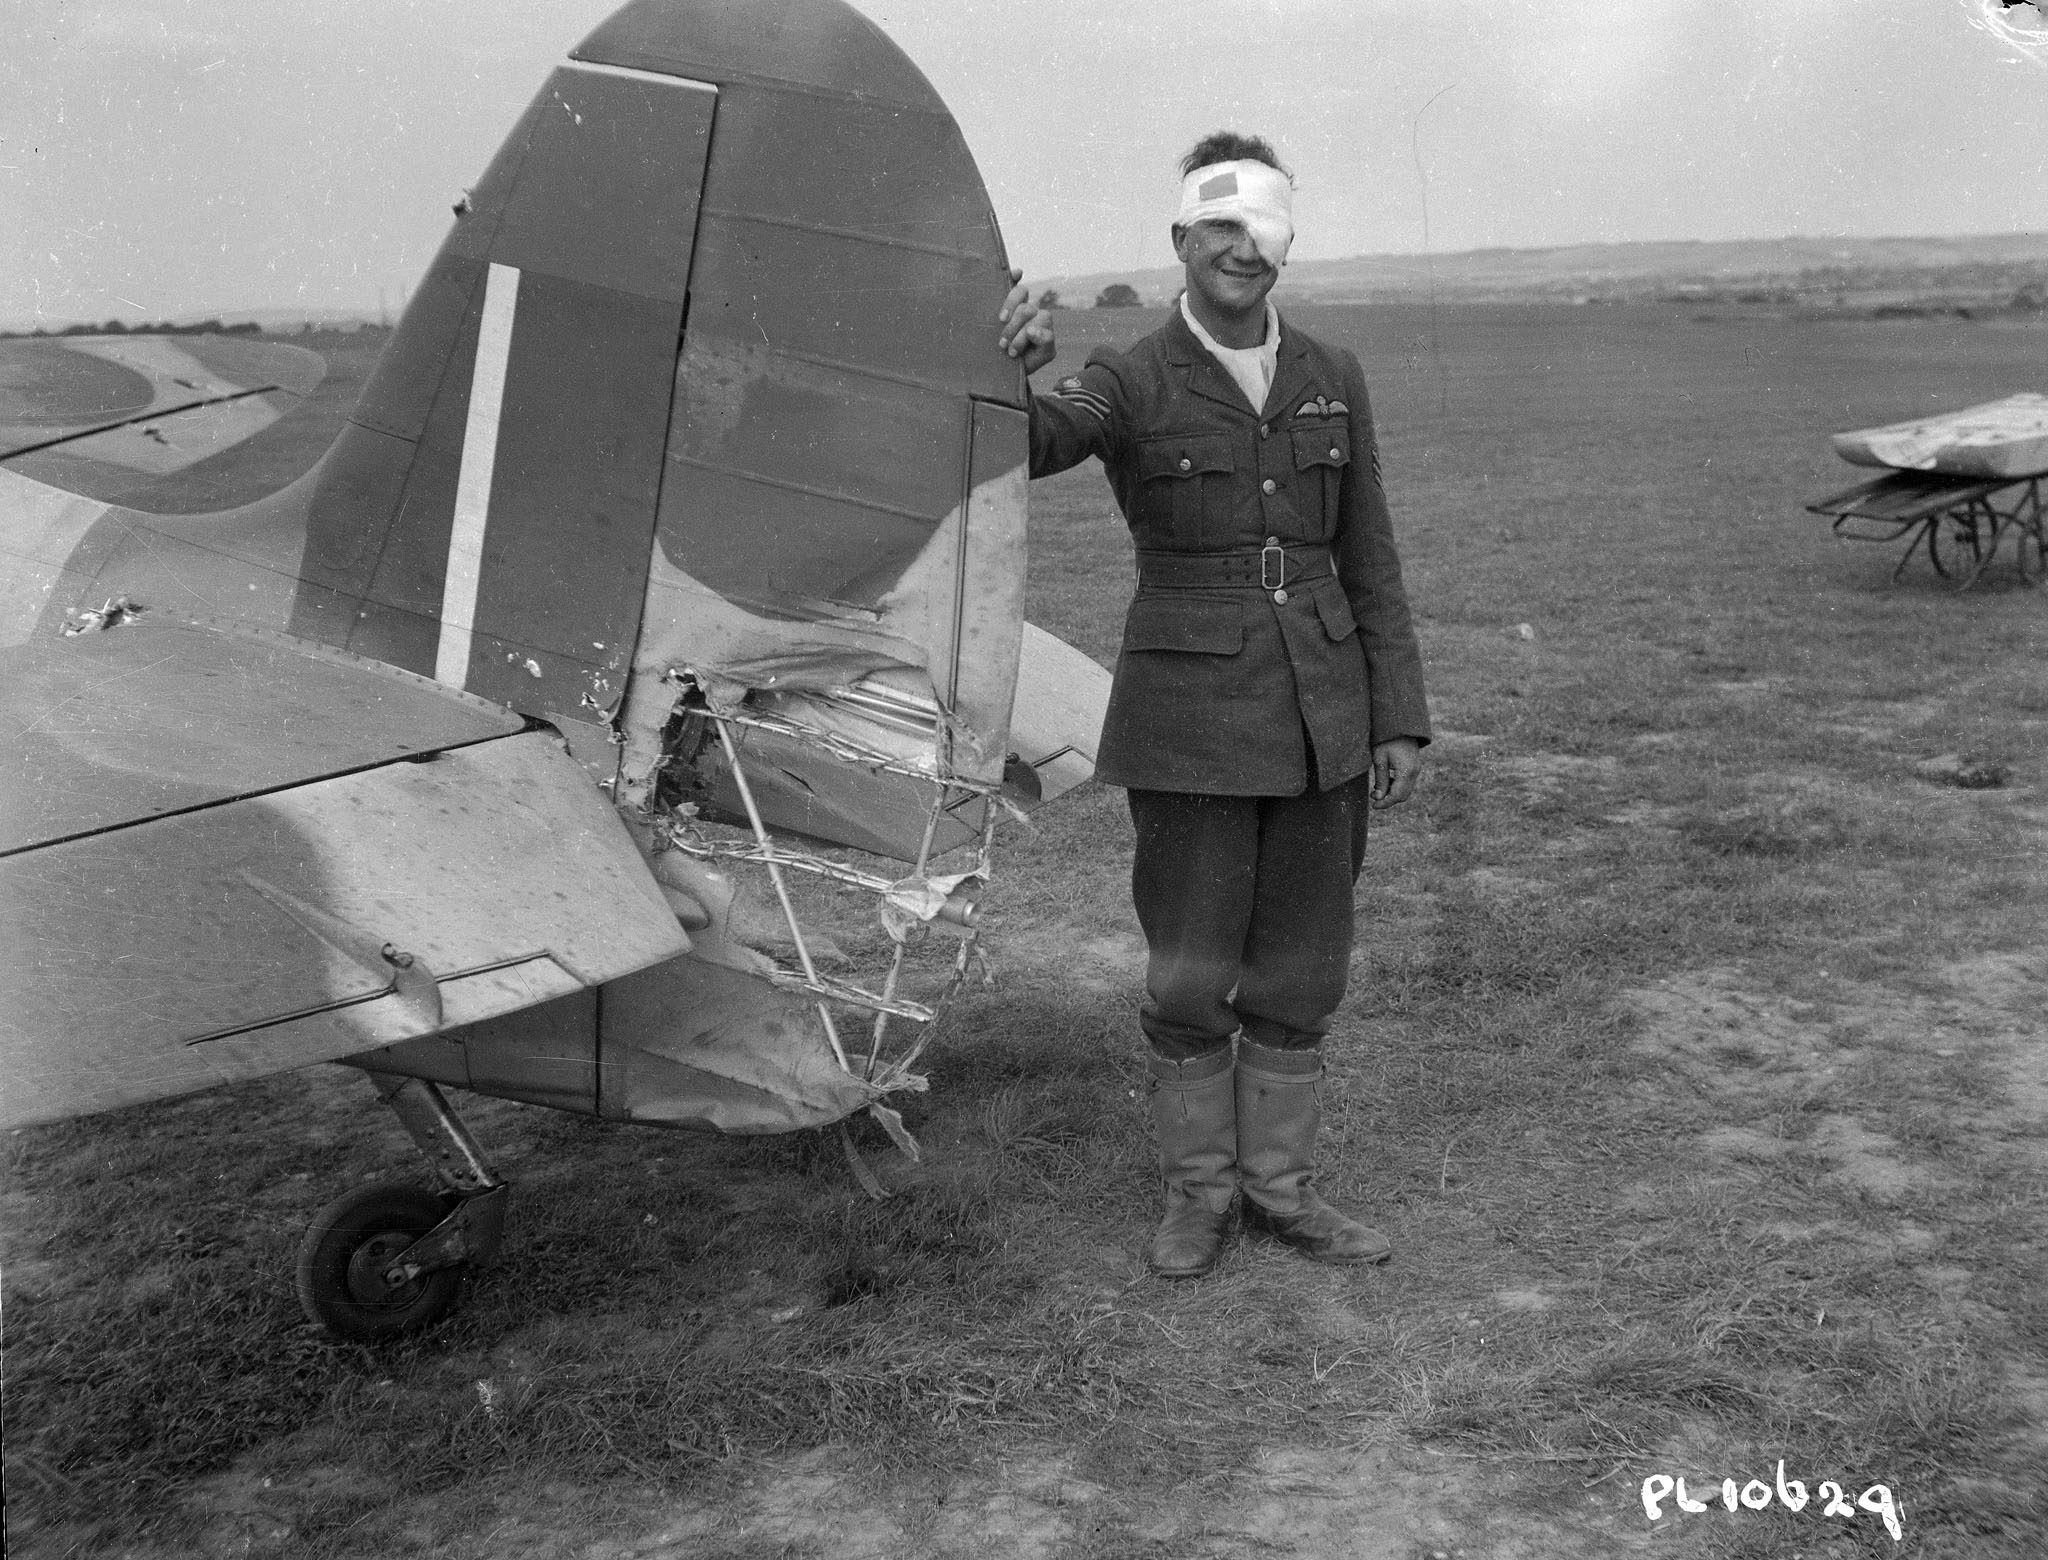 A man, who is wearing a military uniform and has a white bandage wrapped around his head, stands beside a damaged aircraft.